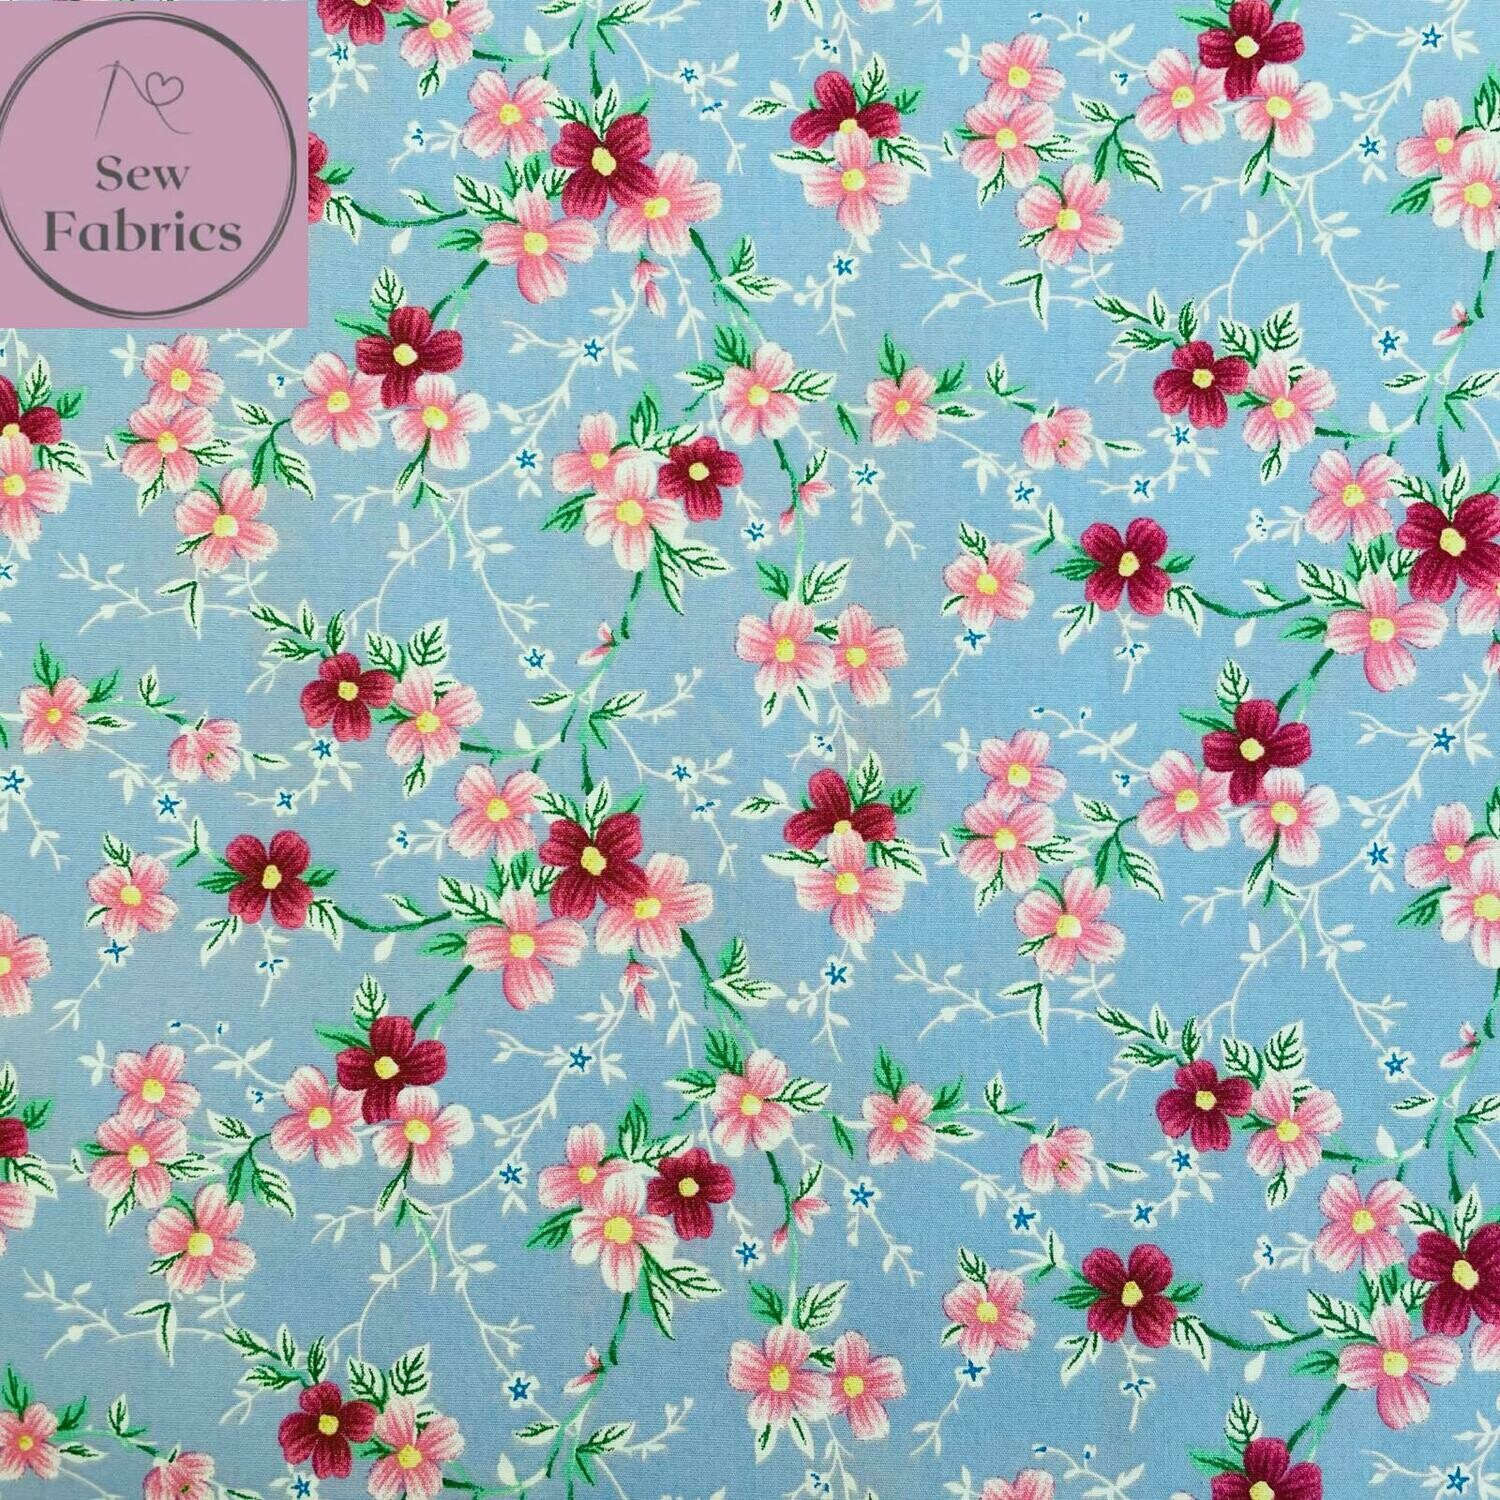 Rose & Hubble Sky Blue Trailing Flowers Floral Fabric 100% Cotton Poplin, Flower Material